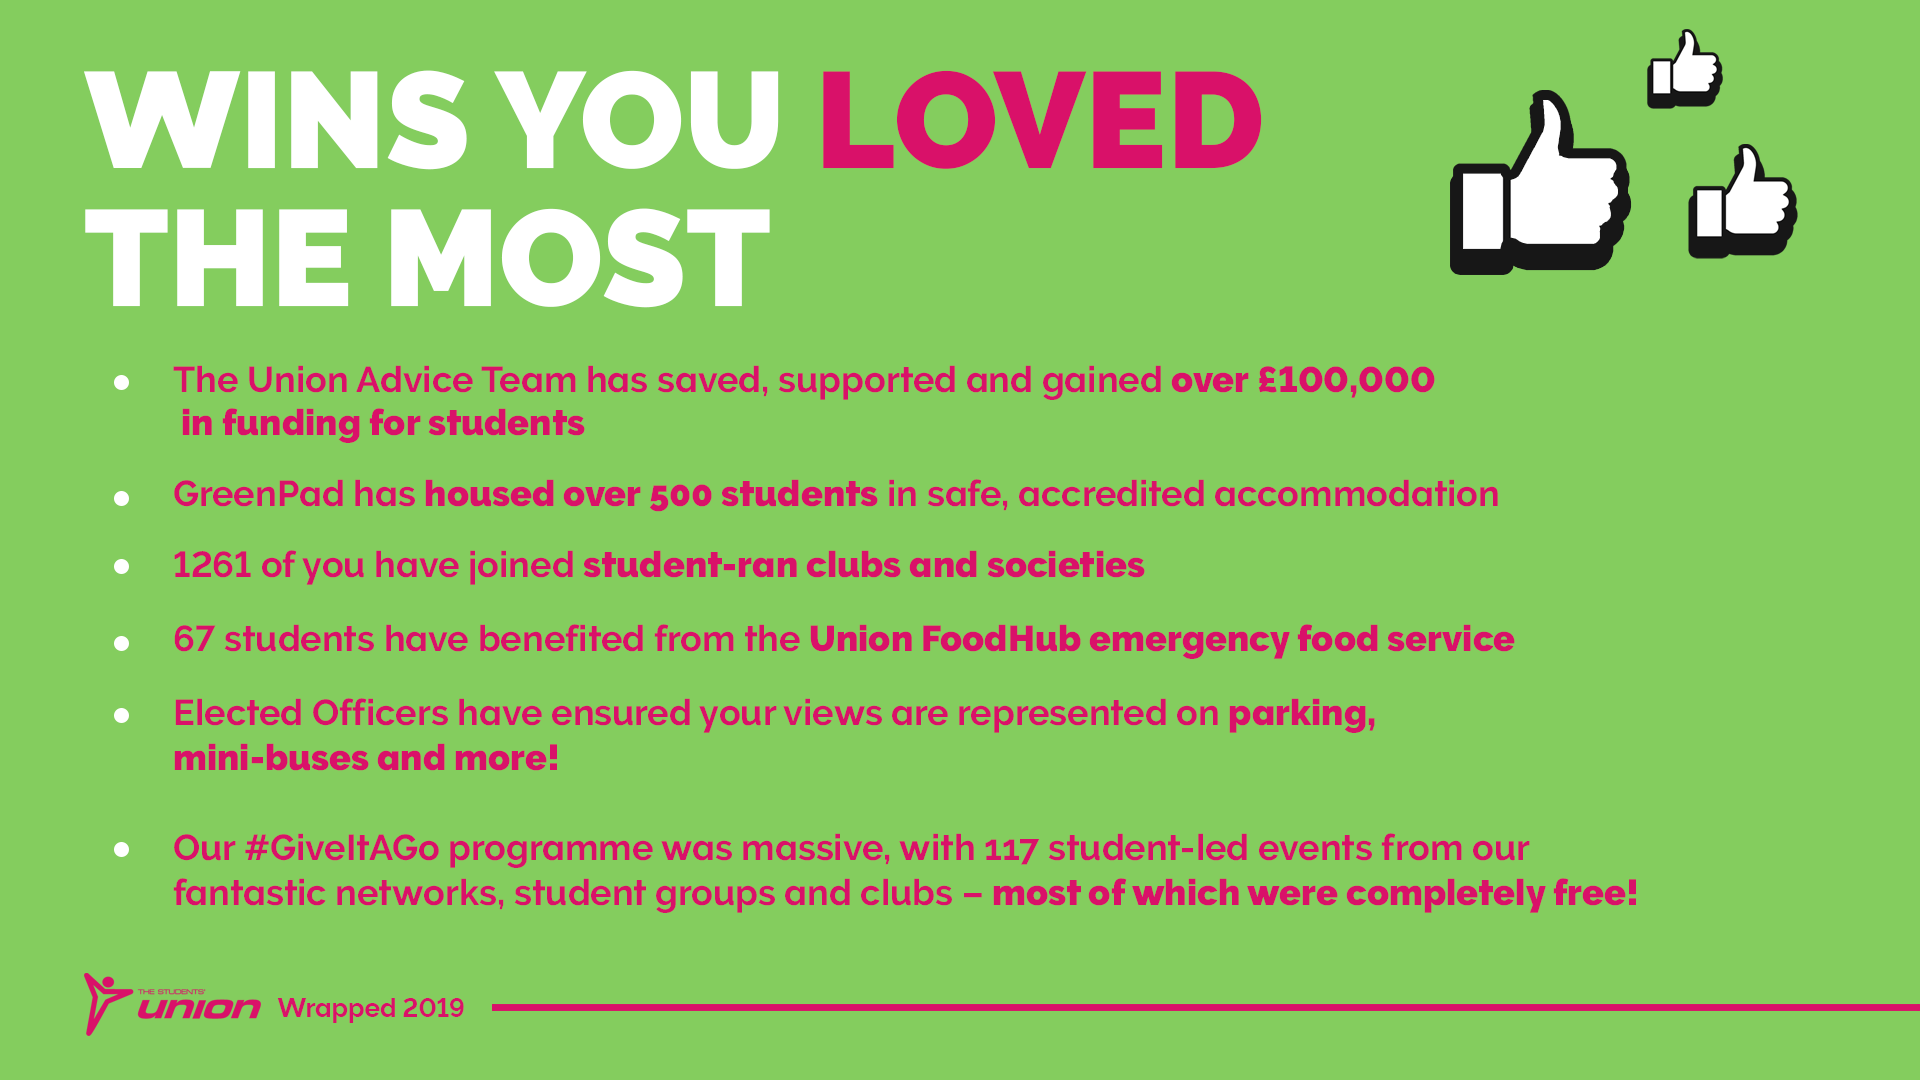 Wins you've loved the most. The Union advice team has saved, supported and gained over £100,000 in funding for students. GreenPad has housed over 500 students in safe, accredited accommodation. 1261 of you have joined student-ran clubs and societies. 67 students have benefited from the Union FoodHub emergency food service. Elected Officers have ensured your views are represented on parking, mini-buses and more! Our #GiveItAGo programme was massive, with 117 student-led events from our fantastic networks, student groups and clubs - most of which were completely free!